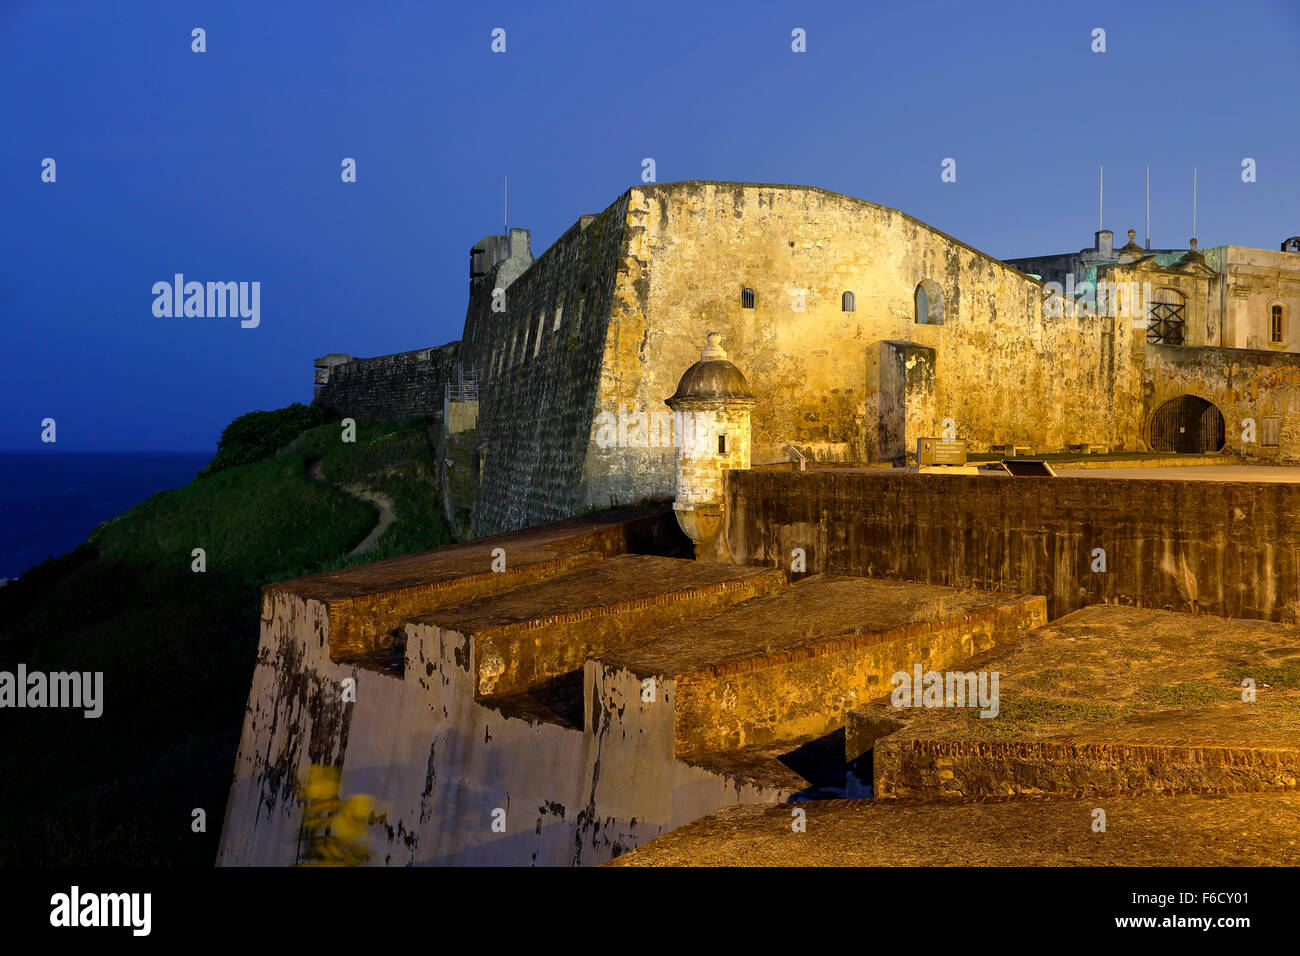 Château de San Cristobal, Site Historique National de San Juan, San Juan, Puerto Rico Photo Stock